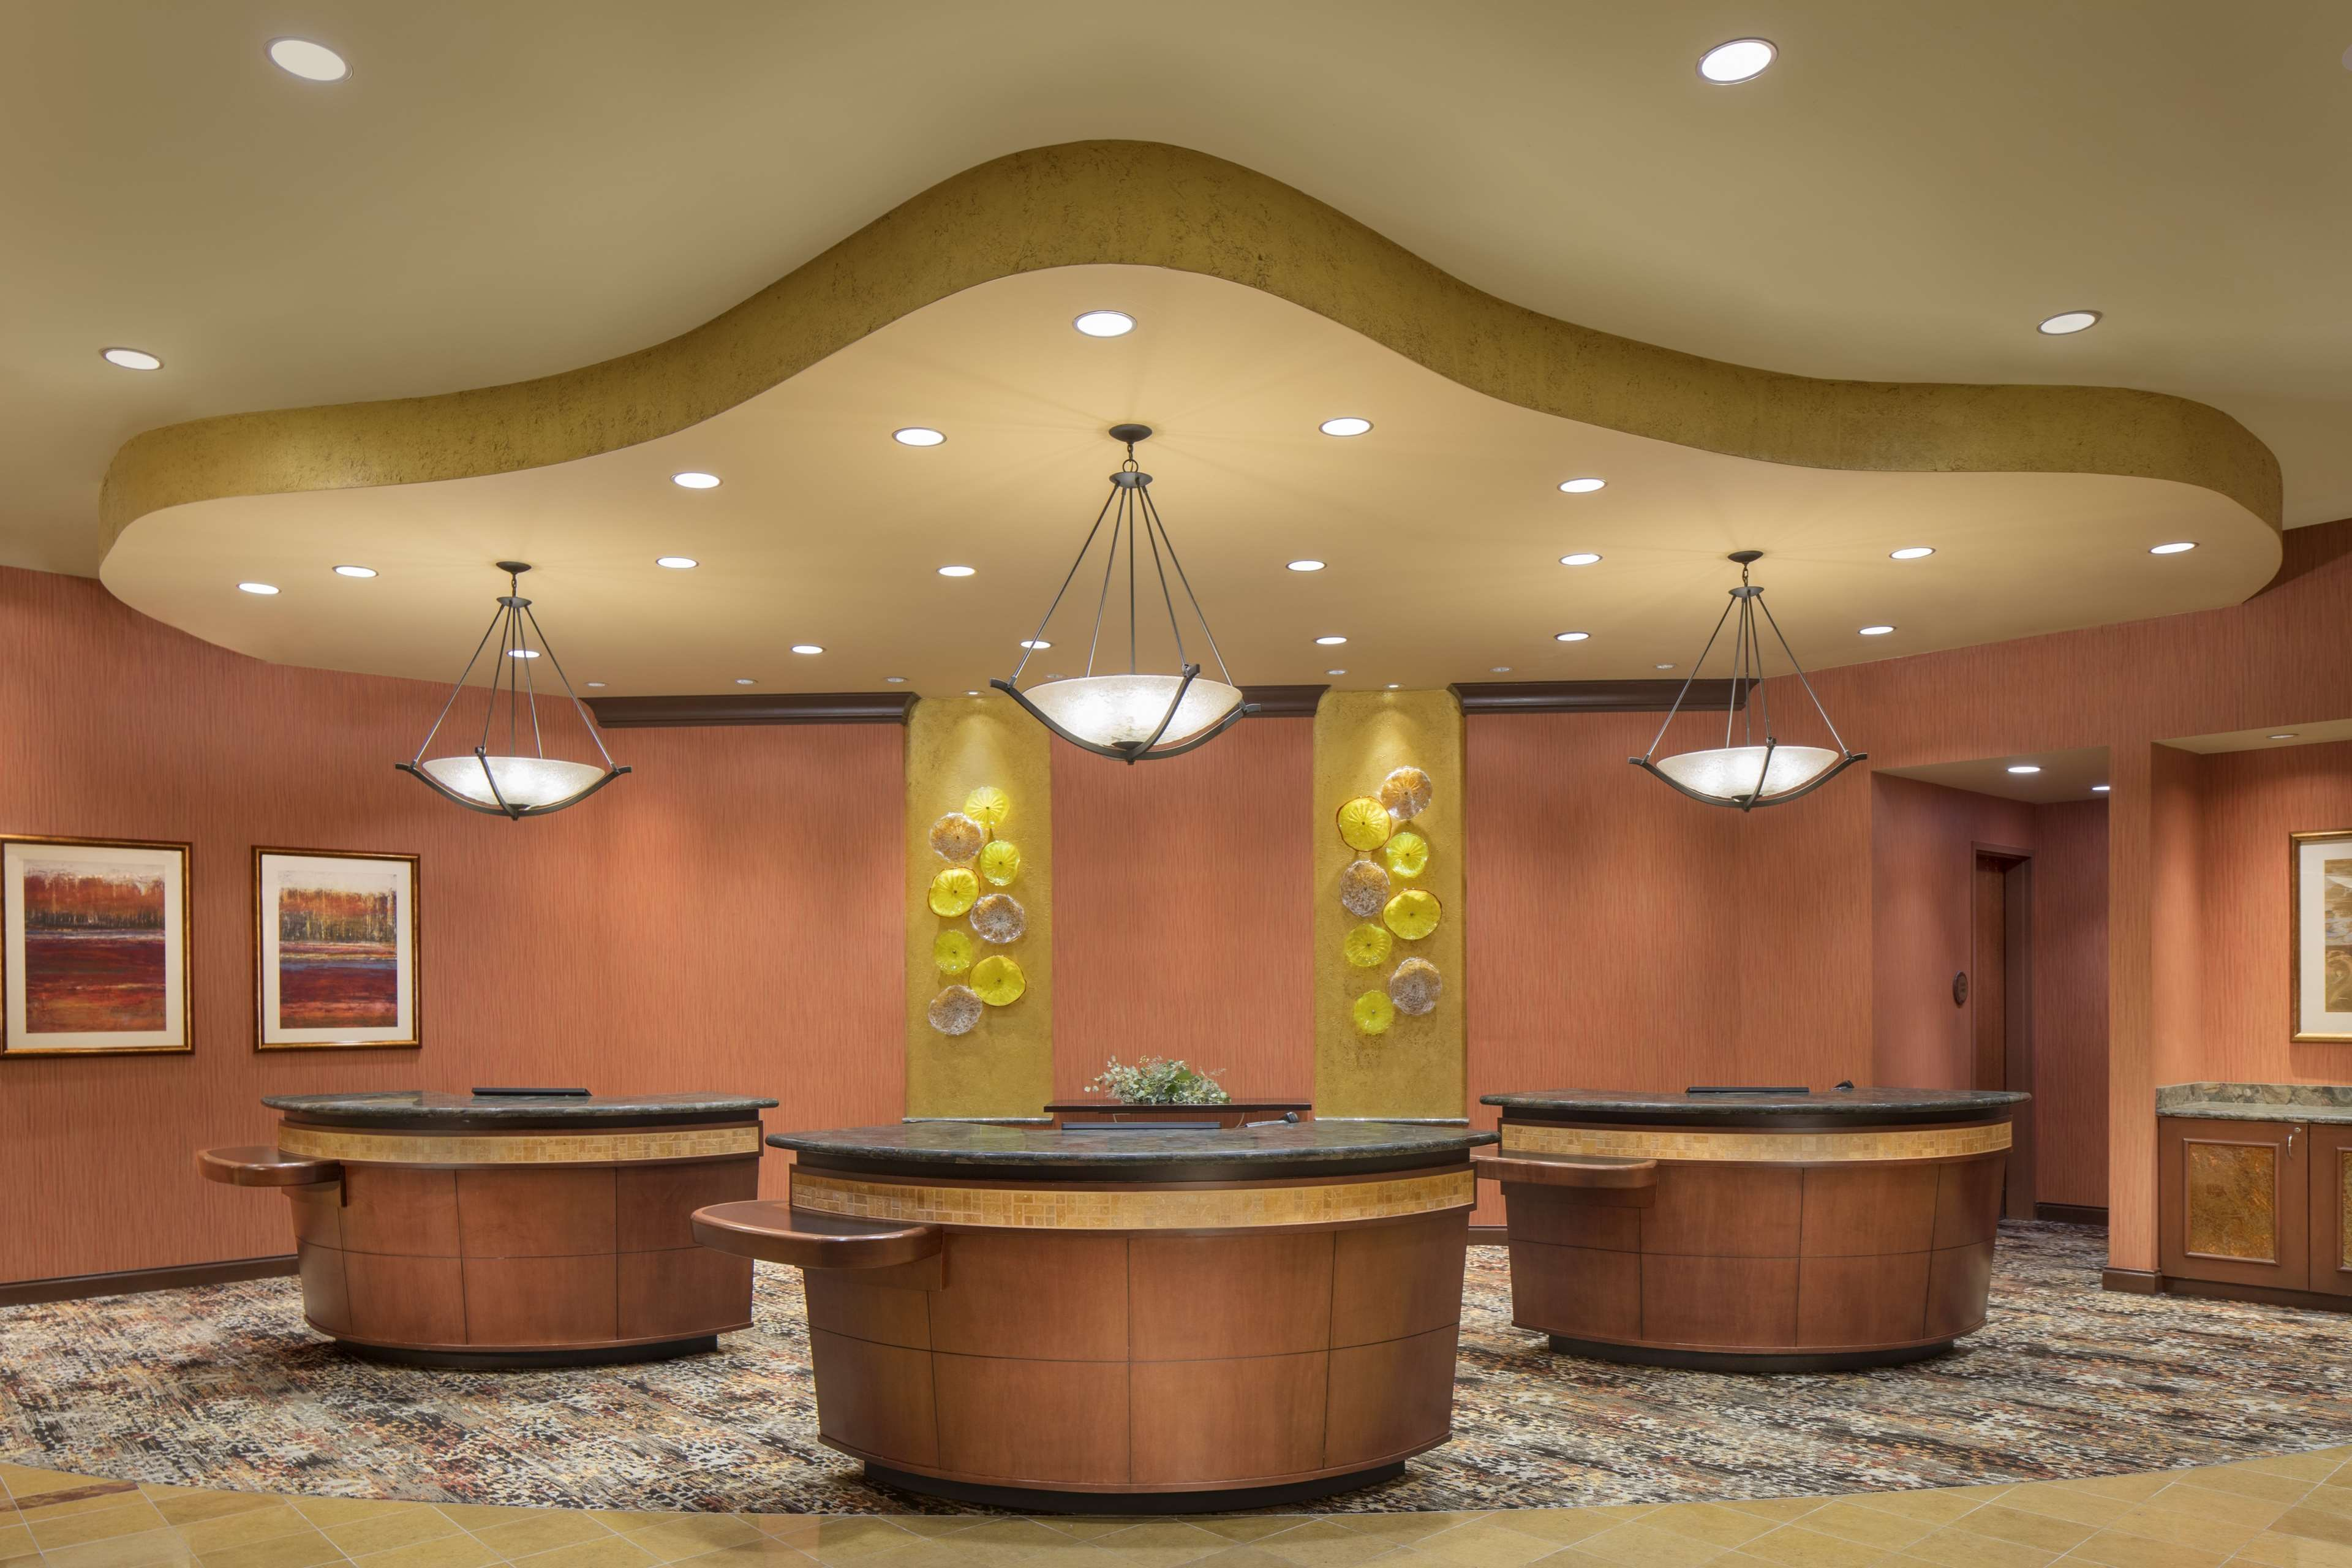 Embassy Suites by Hilton San Marcos Hotel Conference Center & Spa image 5